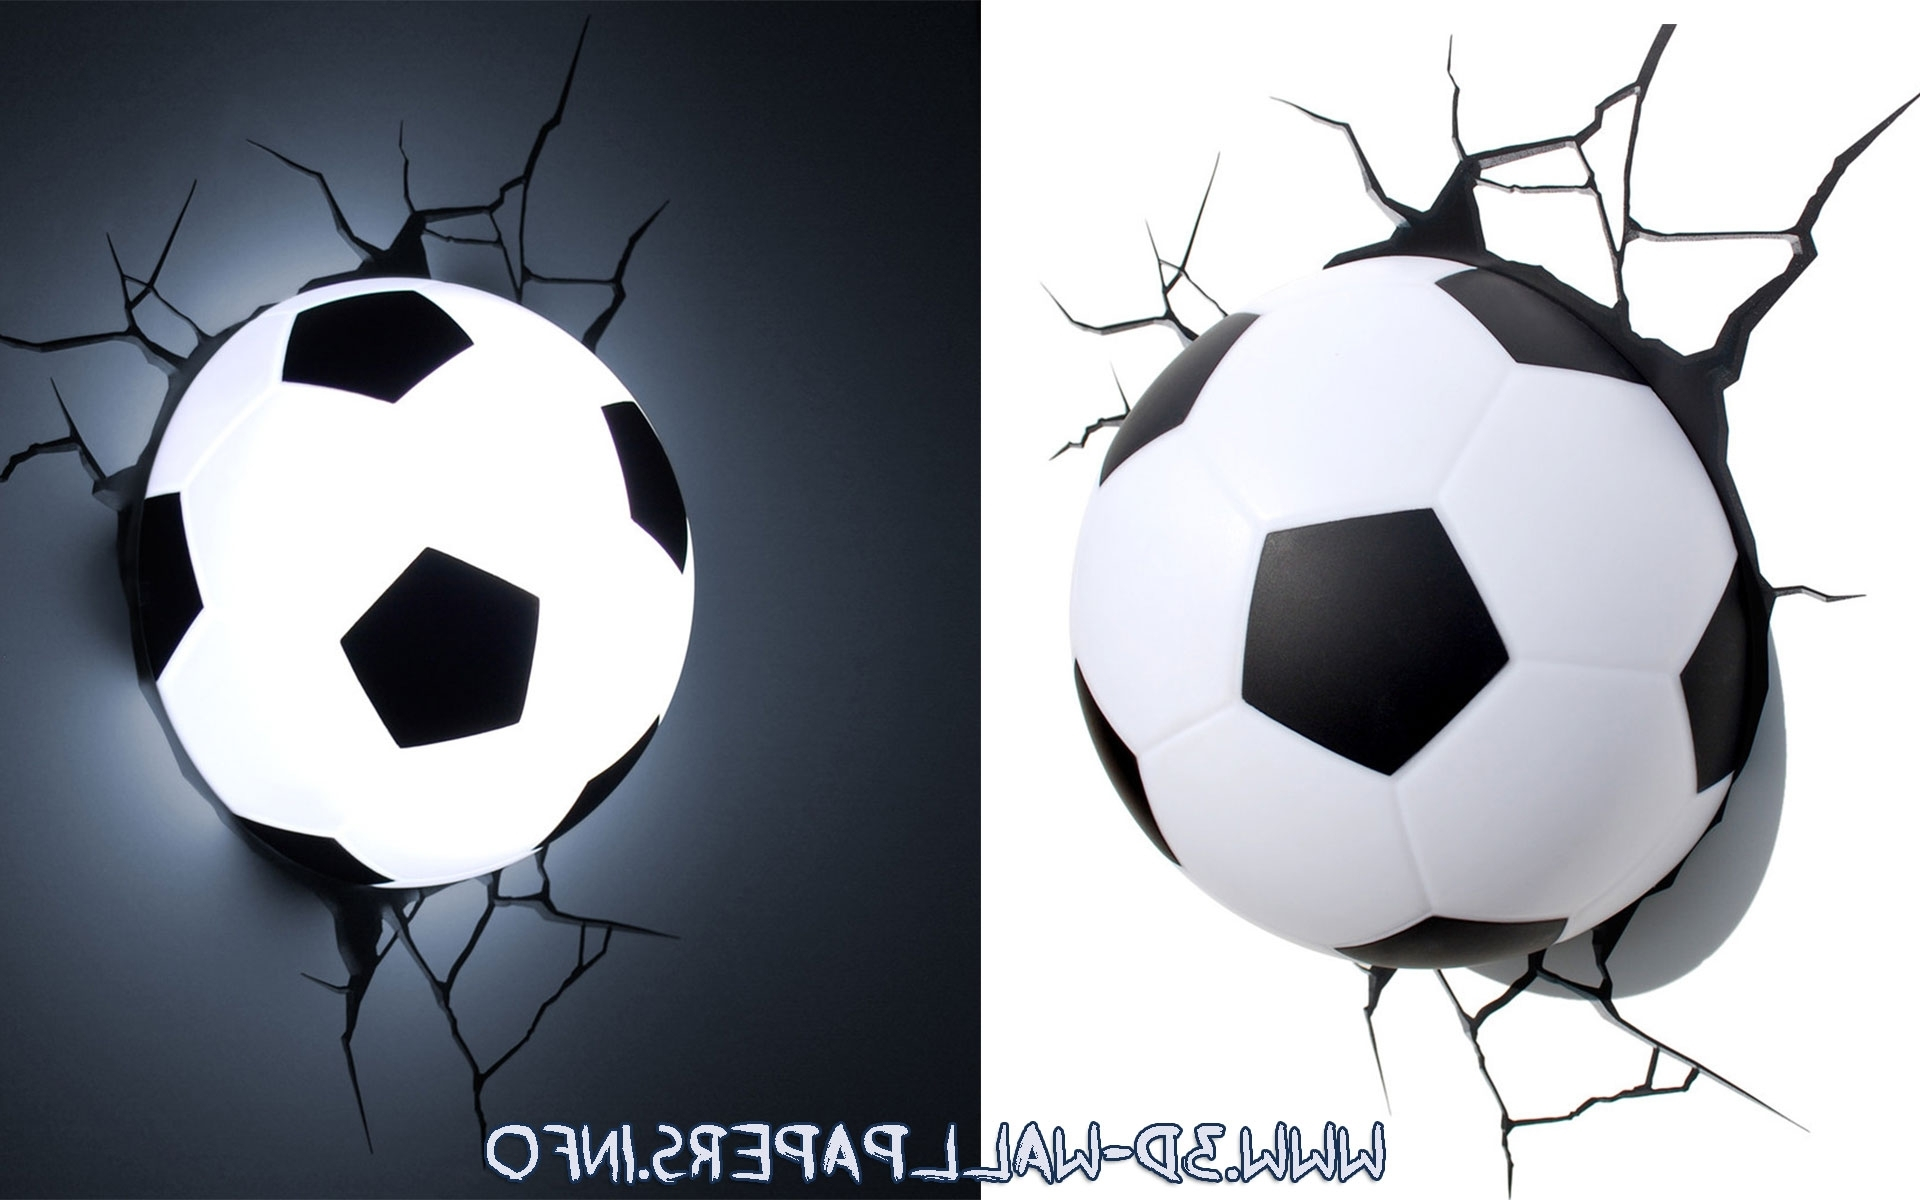 3D Wall Art Night Light Soccer Ball – Sports 3D Wall Nightlight In Most Up To Date Football 3D Wall Art (View 4 of 15)